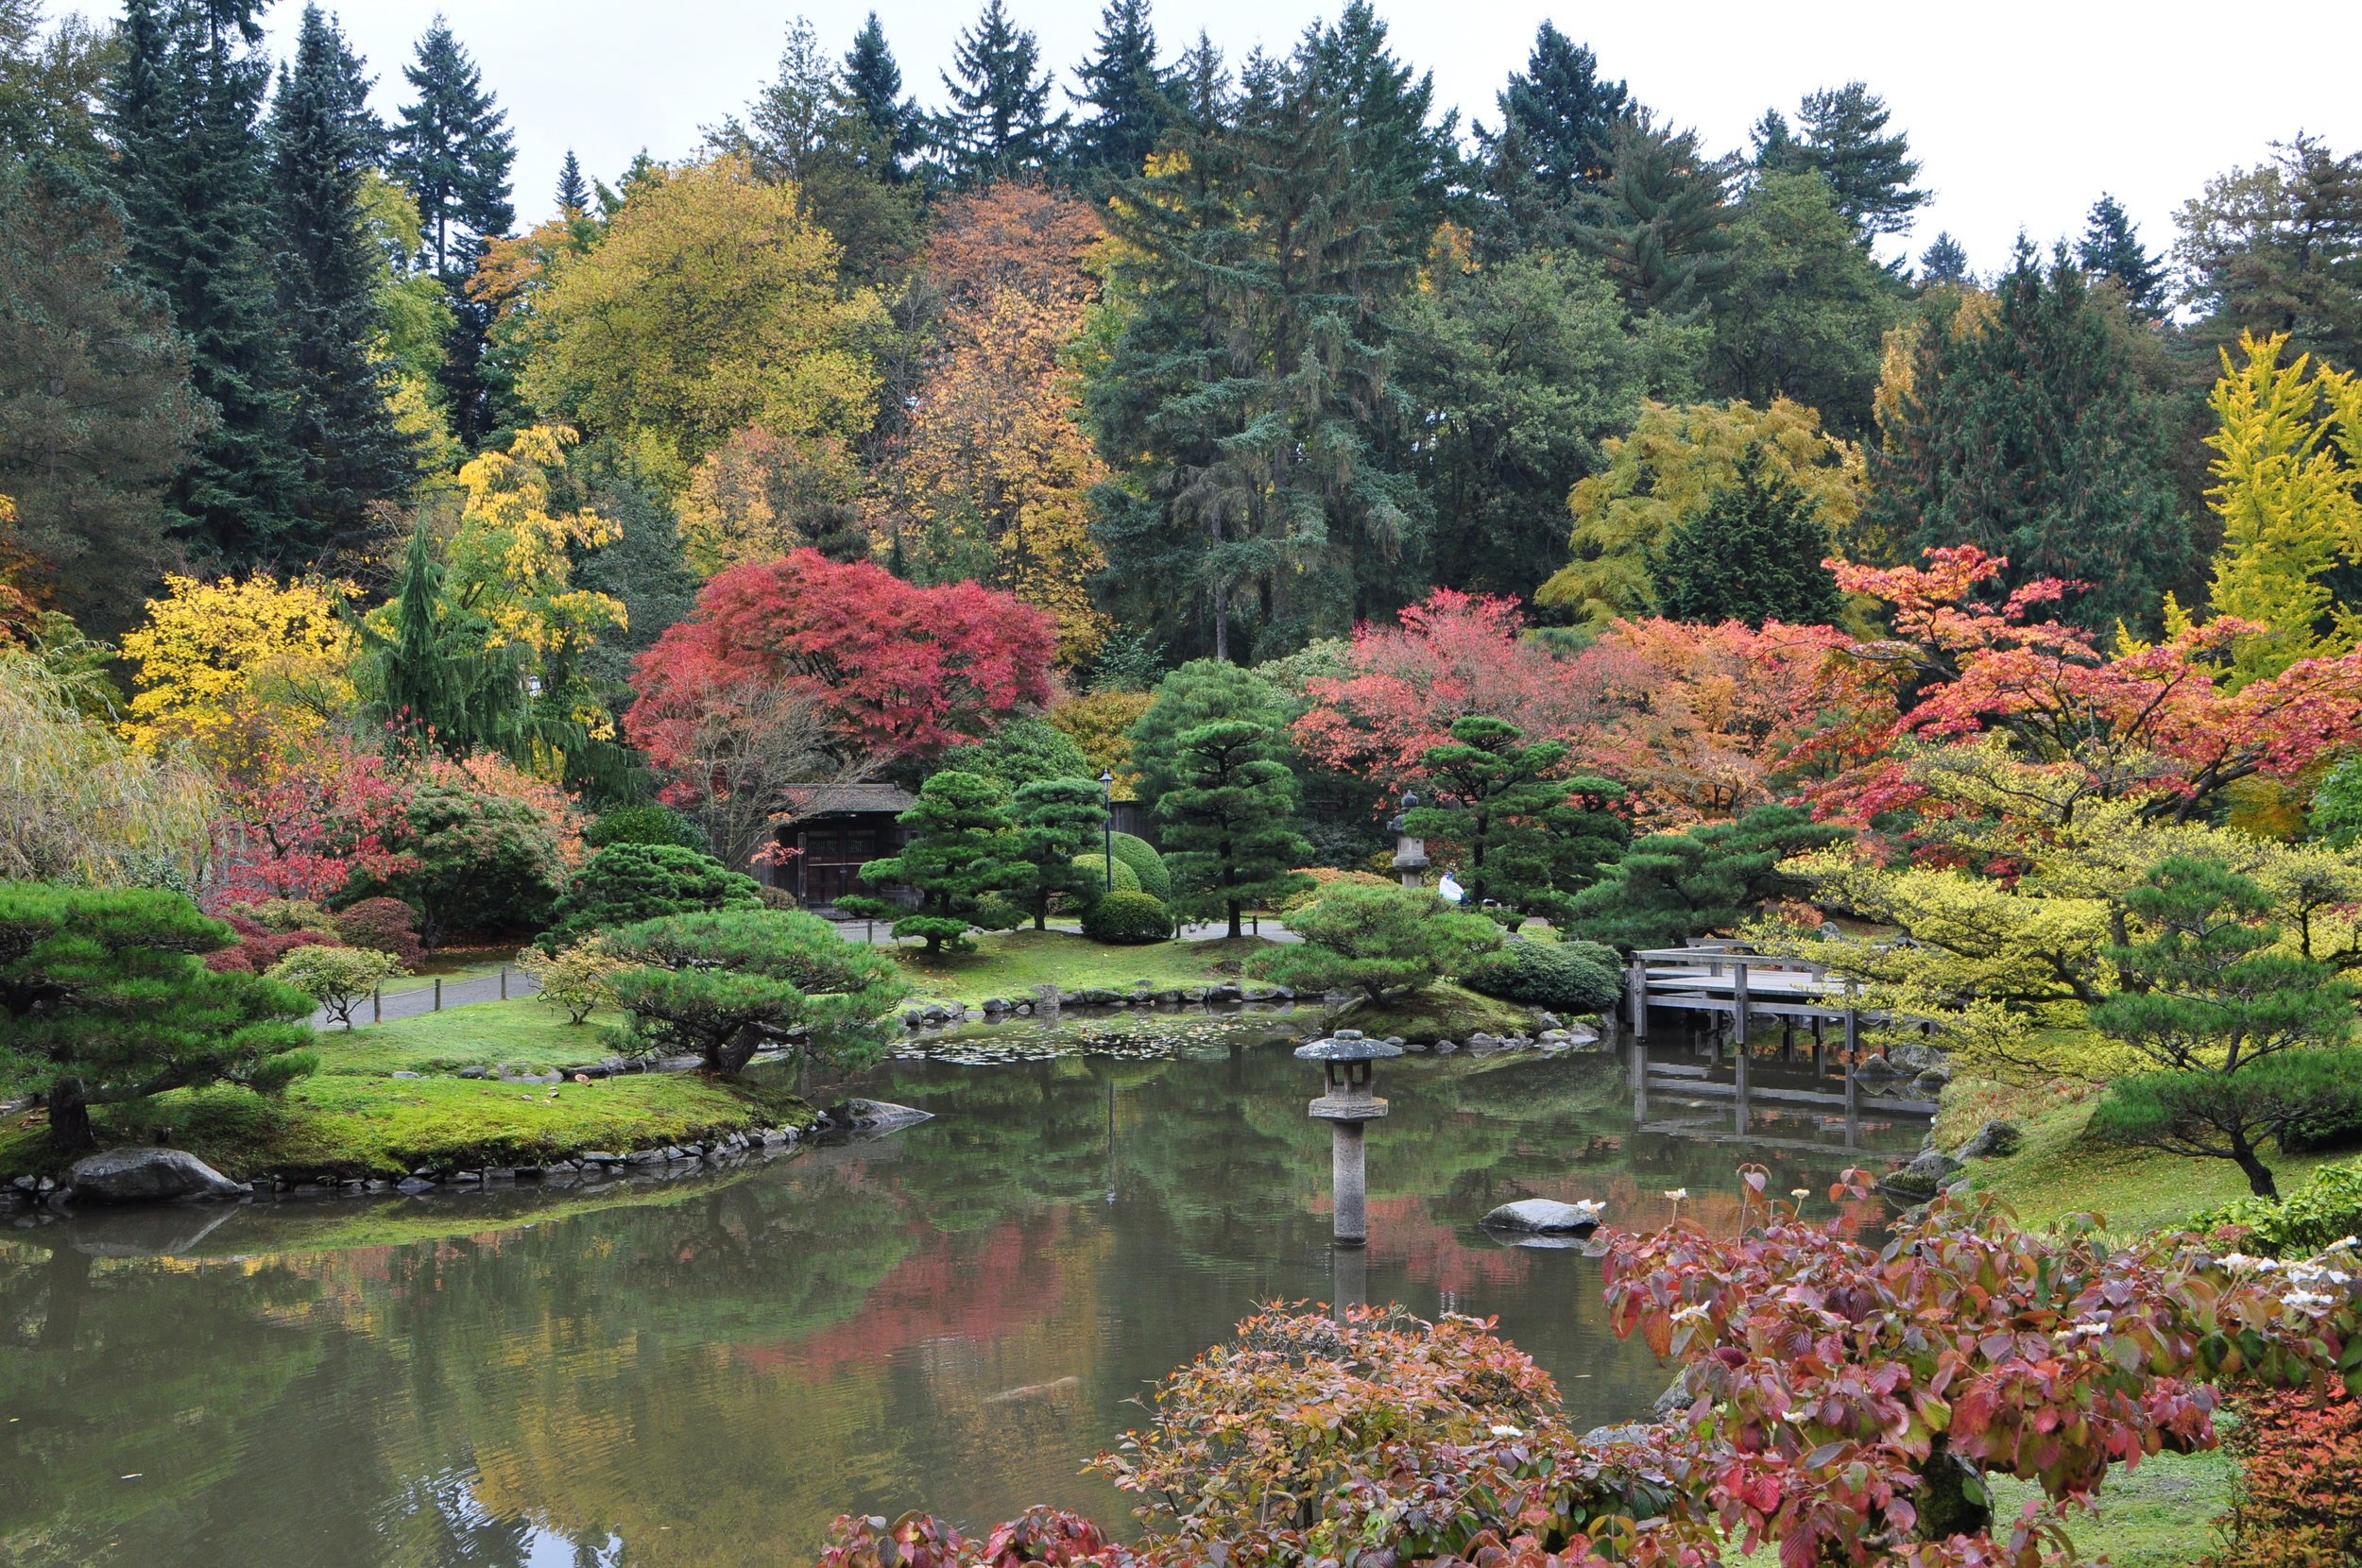 The Seattle Japanese Garden, with a meandering path around its central pond. (photo: 2011, Creative Commons Attribution-Share Alike 2.0 Generic license)